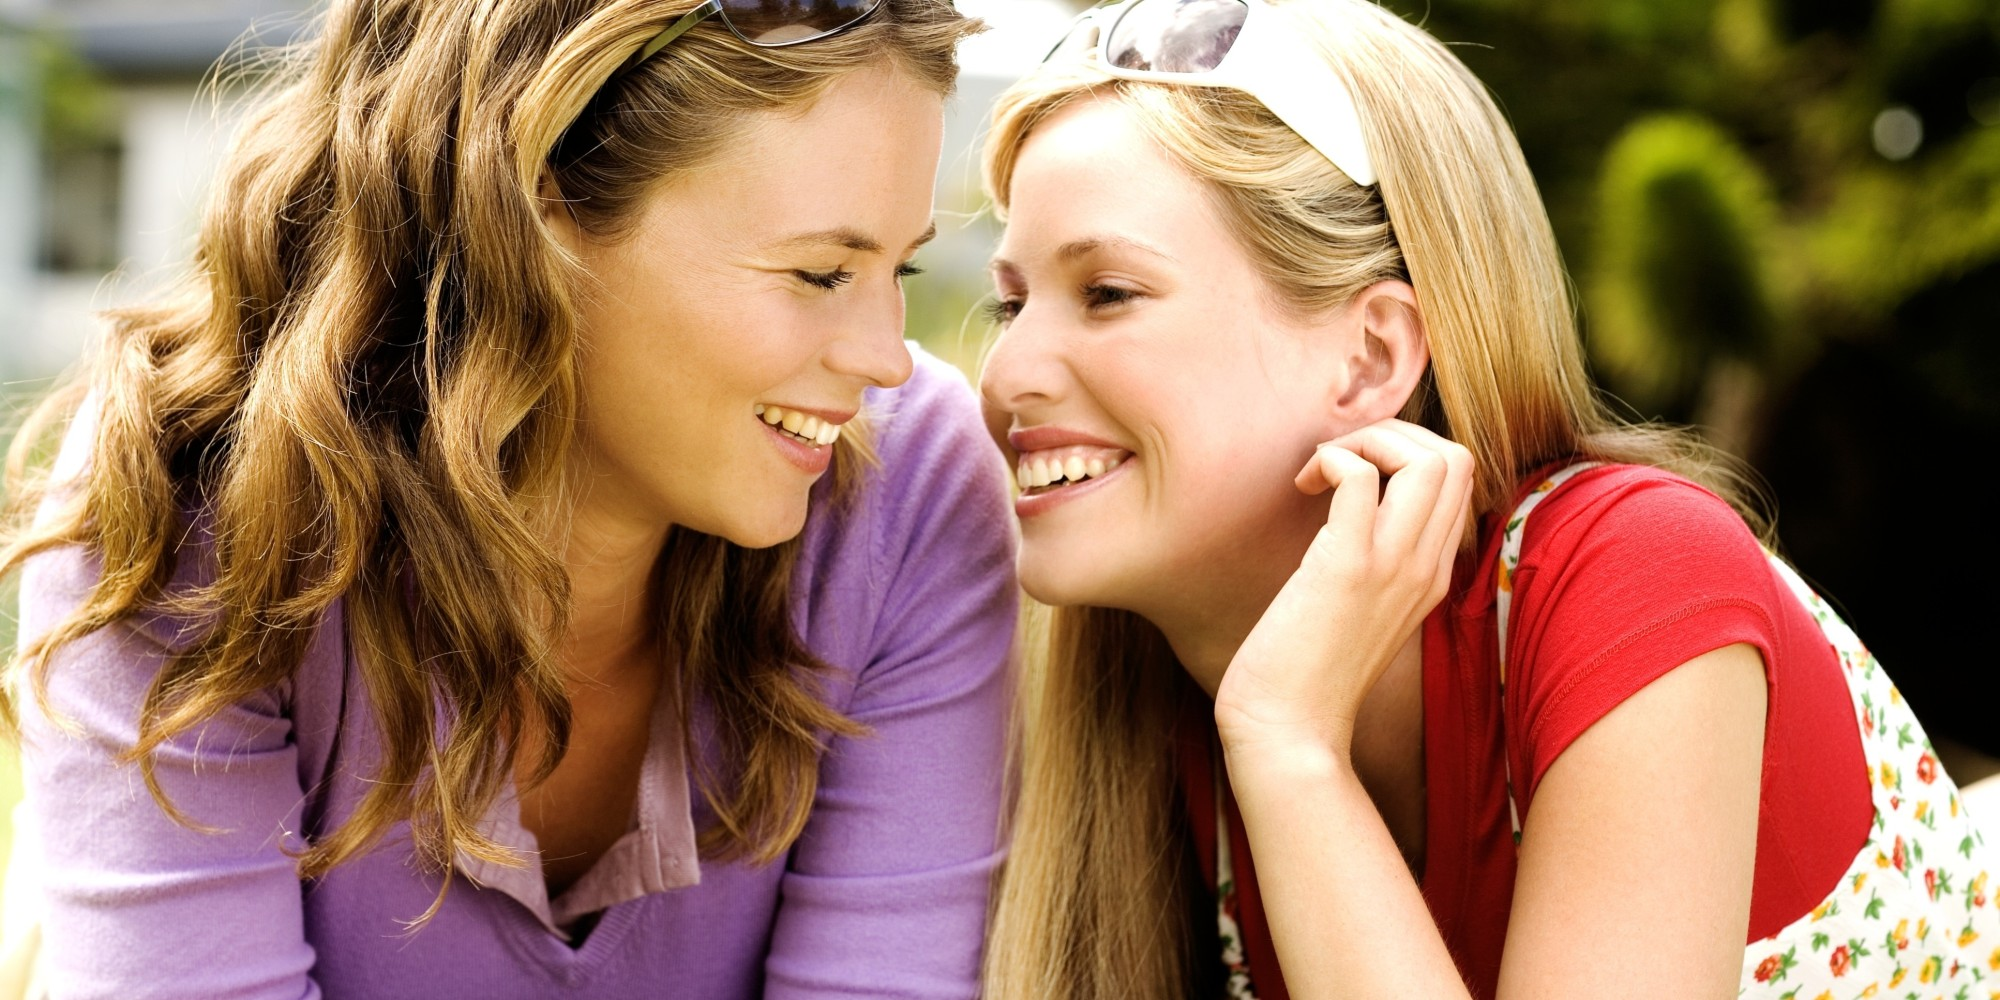 gay single lesbian women Networking site for women and gay men is here, fruitloopedcom fruitloopedcom is a new website and upcoming app where gay men and straight women can meet up and share what matters to them.